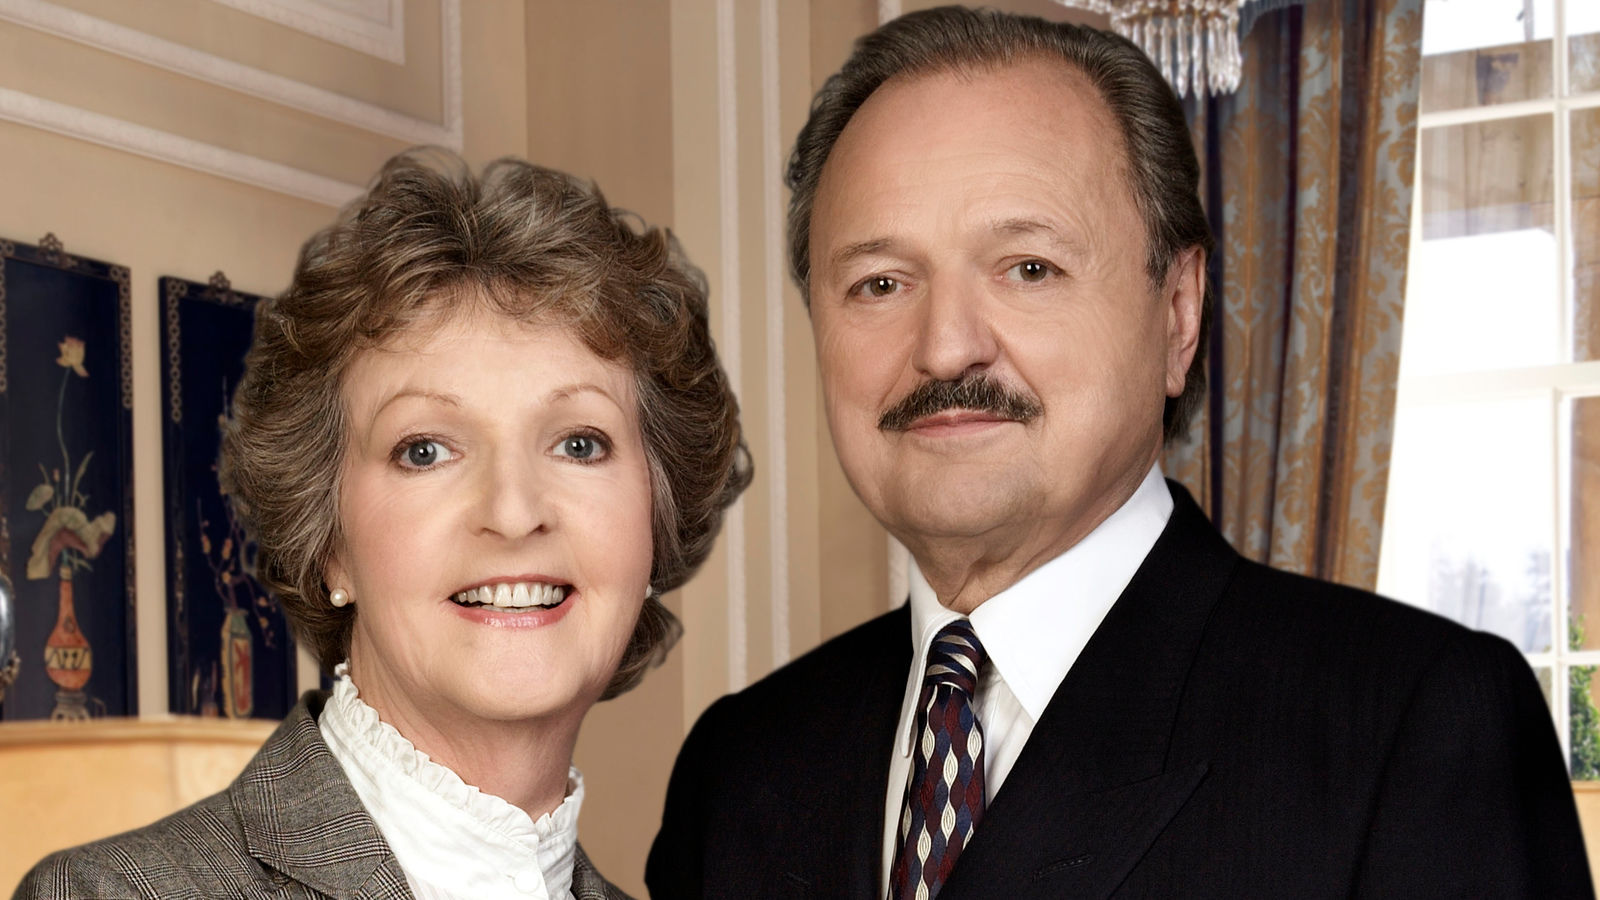 A picture of Penelope Keith and Peter Bowles, the stars of To The Manor Born